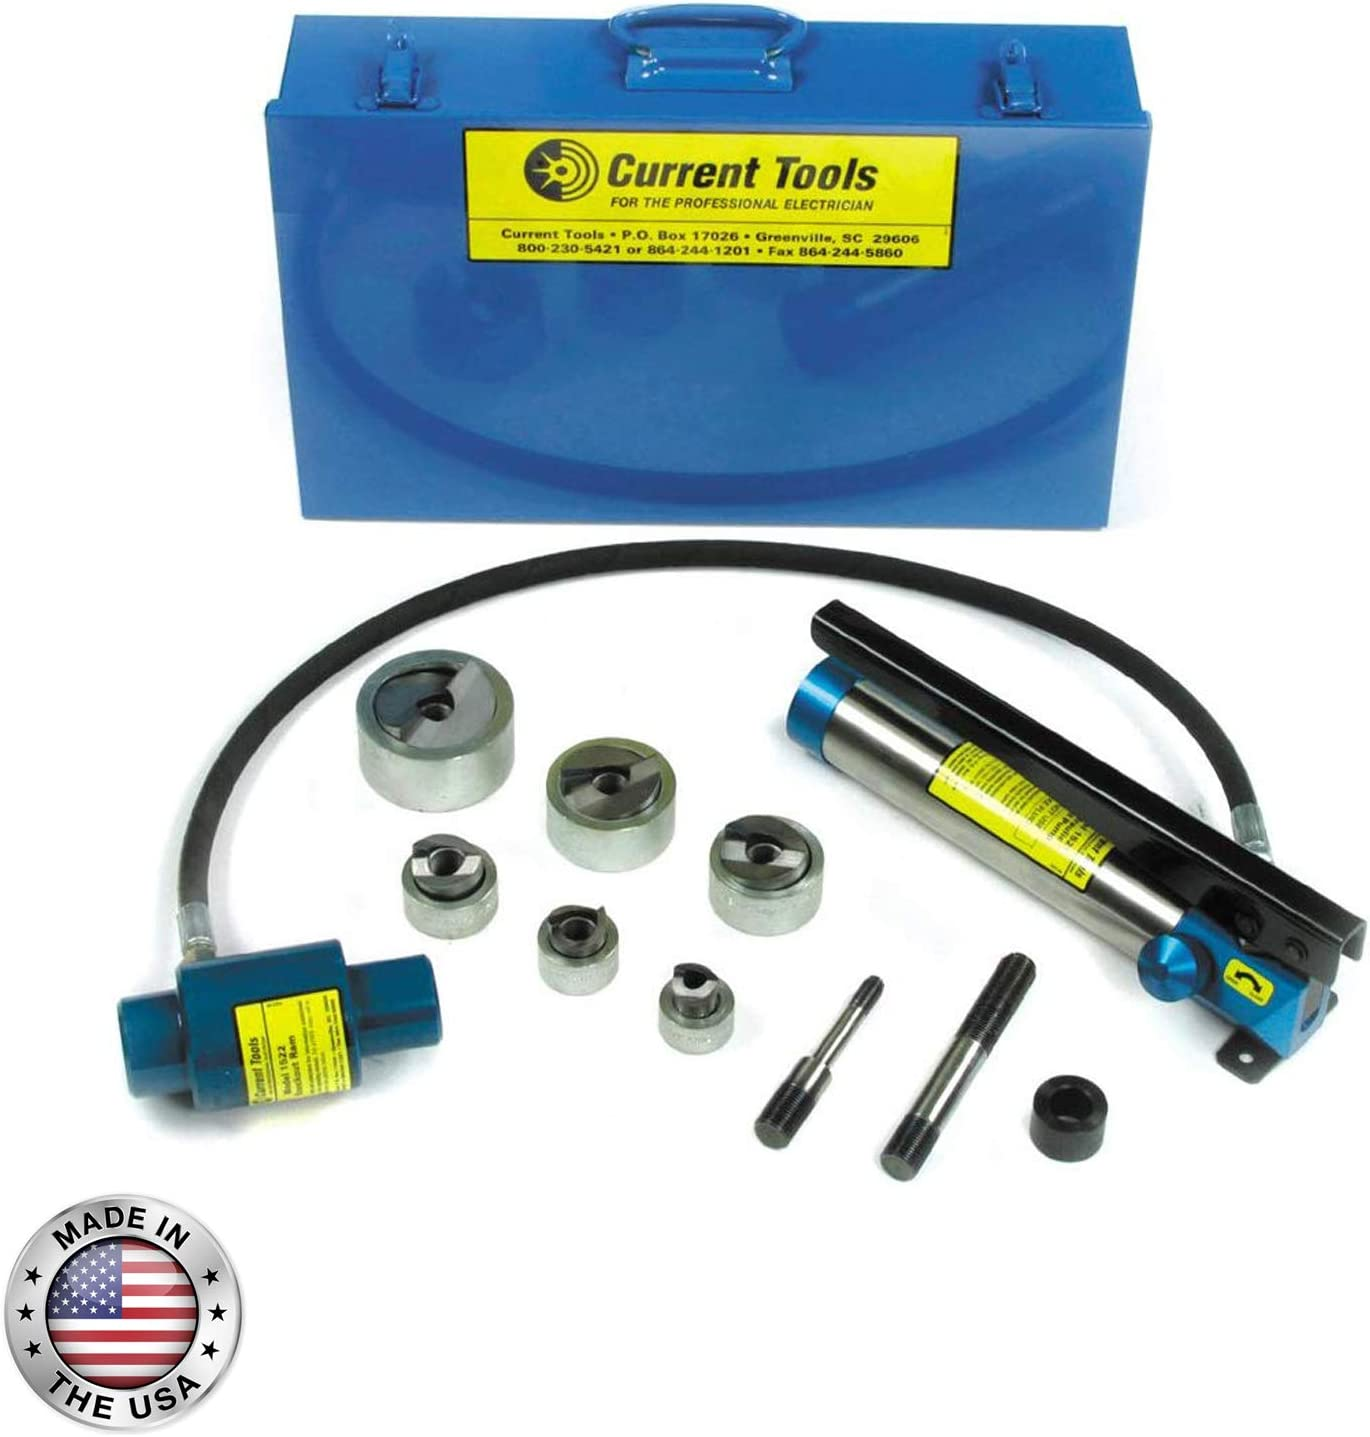 1//2 to 2-161SS CURRENT TOOLS Heavy Duty Piece Maker Hydraulic Knockout Set for Stainless Steel